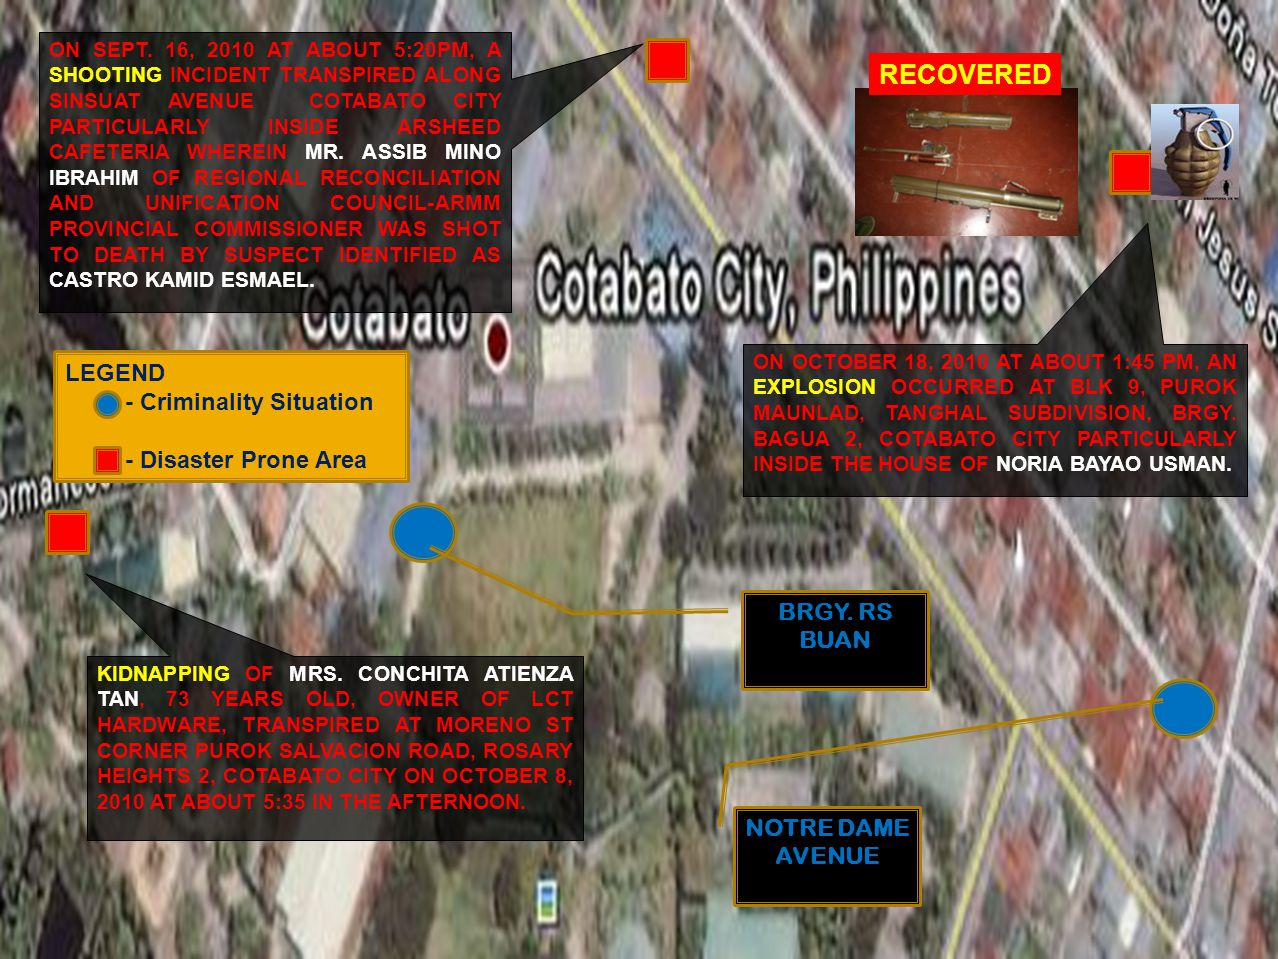 ON SEPT.10, 2010 AT ABOUT 6:30AM, AN AMBUSH INCIDENT TRANSPIRED AT BGRY.